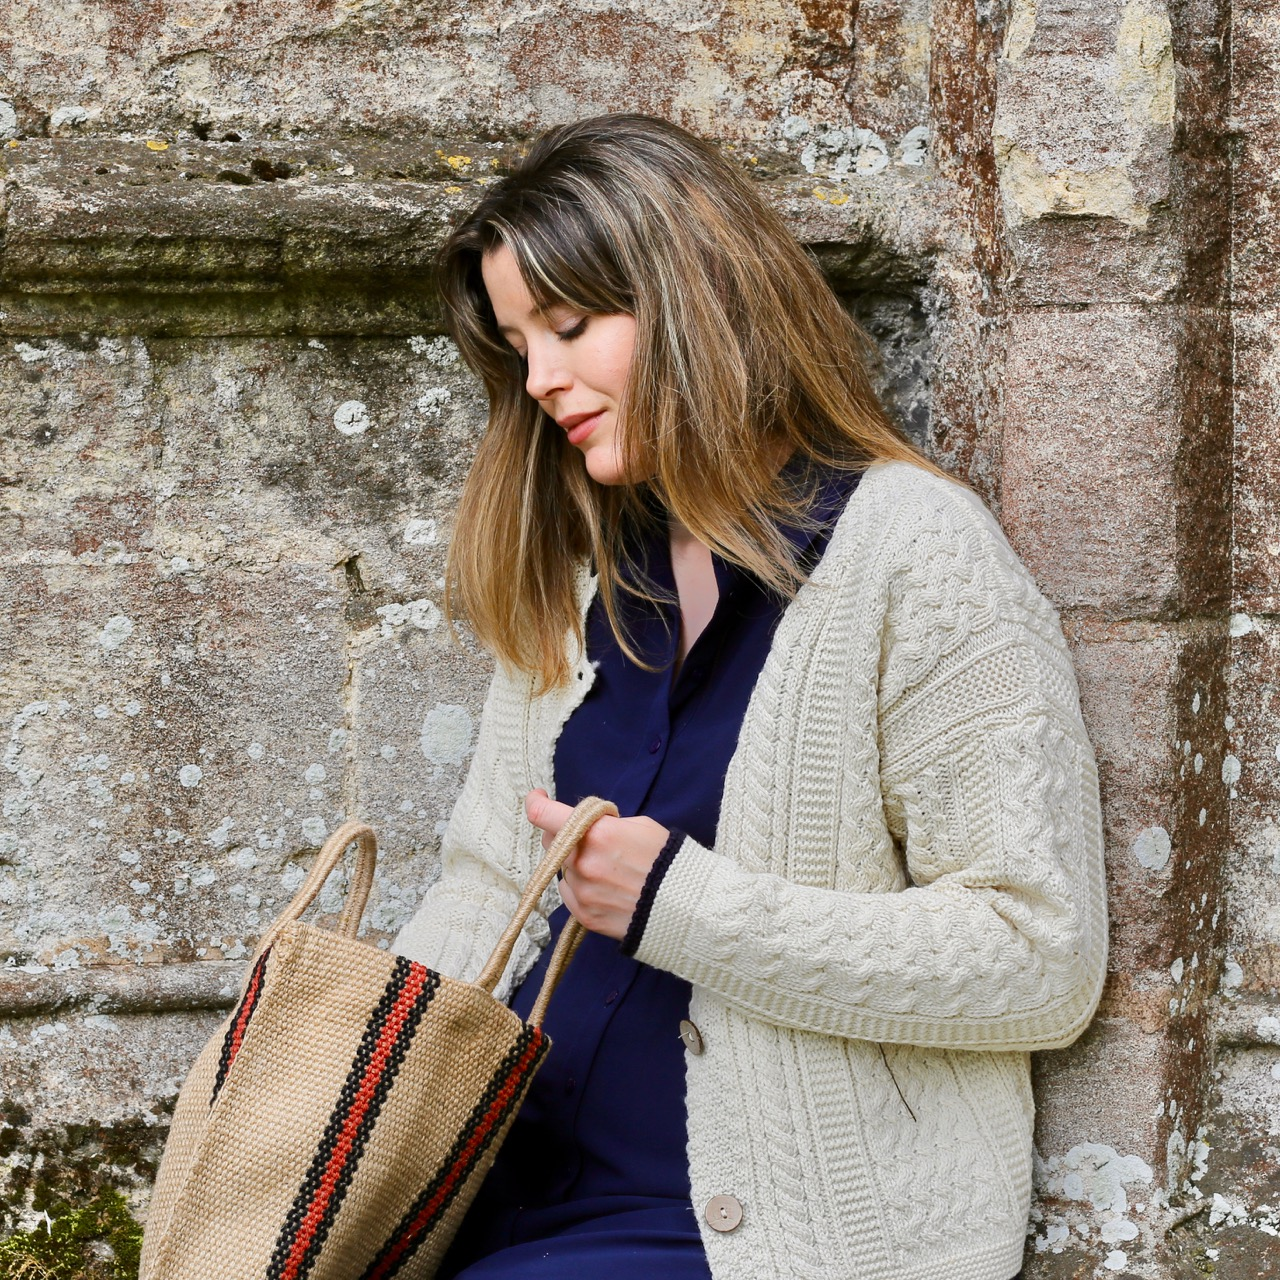 Celtic & Co Cardigan and Turtle Bags jute bag